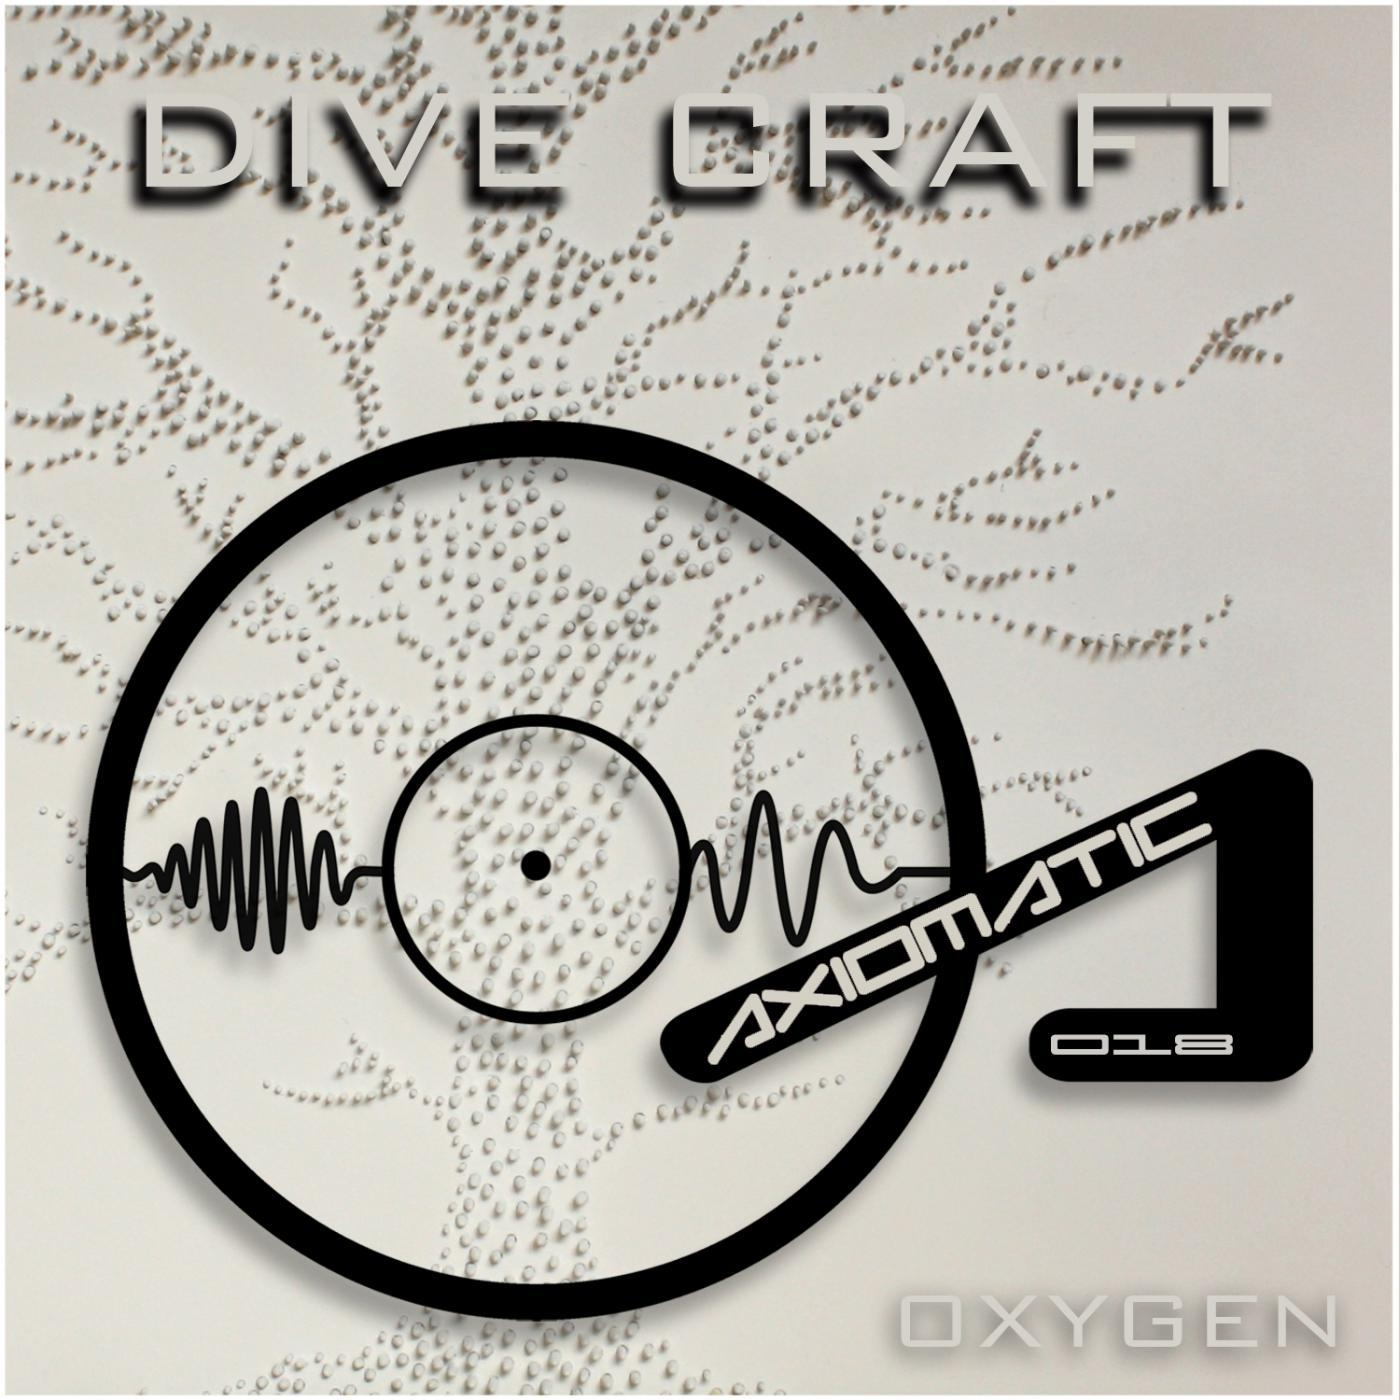 Dive Craft - Scratching The Stratosphere (Original mix)